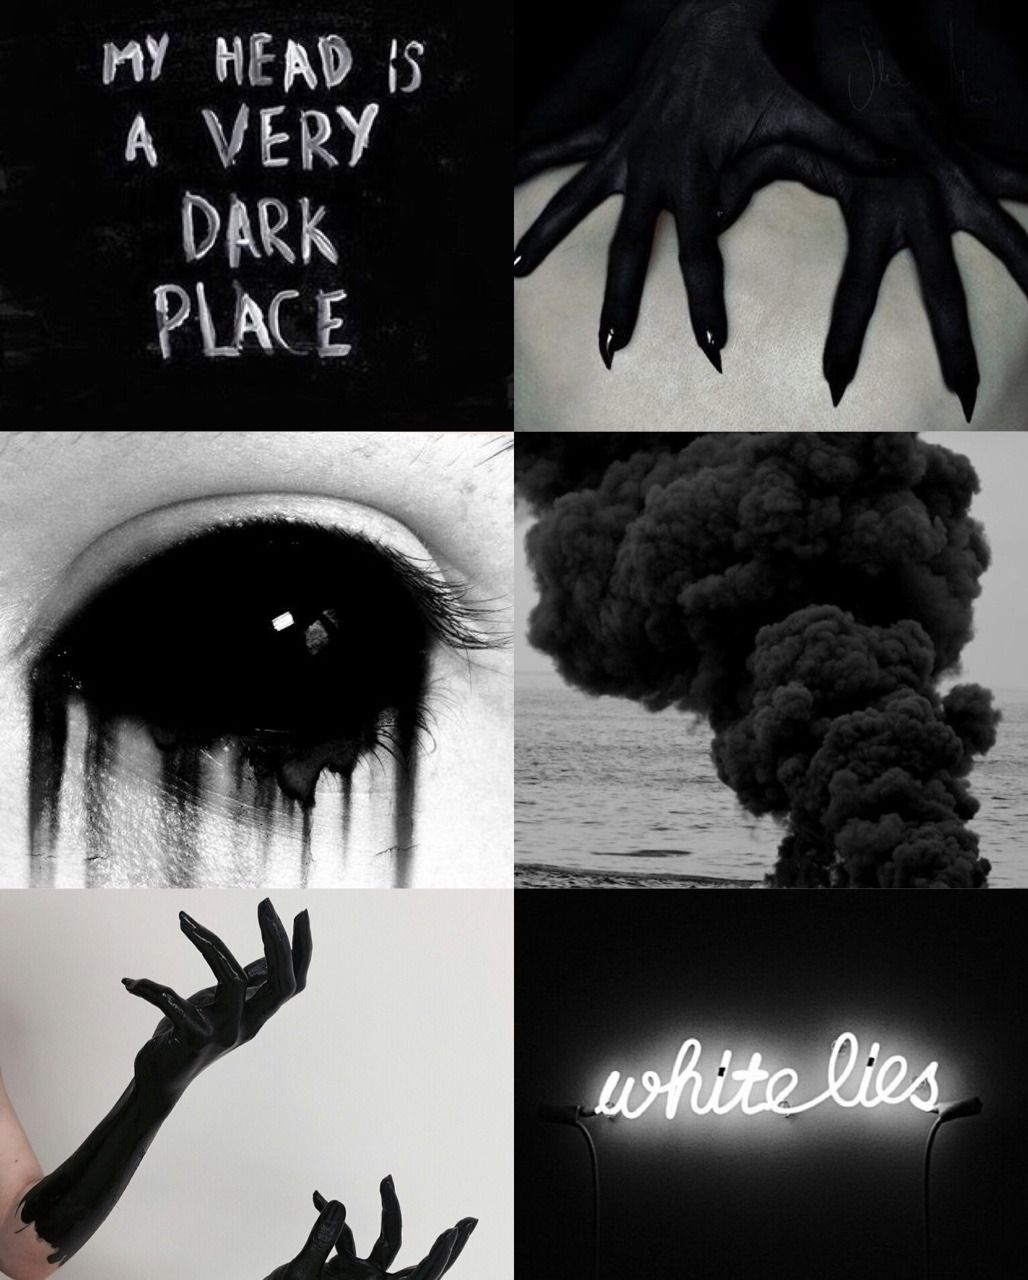 Demon Aesthetic The More You See Of Evil The More Evil Seems Limitless I Guess The Same Goes For Go Demon Aesthetic Death Aesthetic Aesthetic Wallpapers